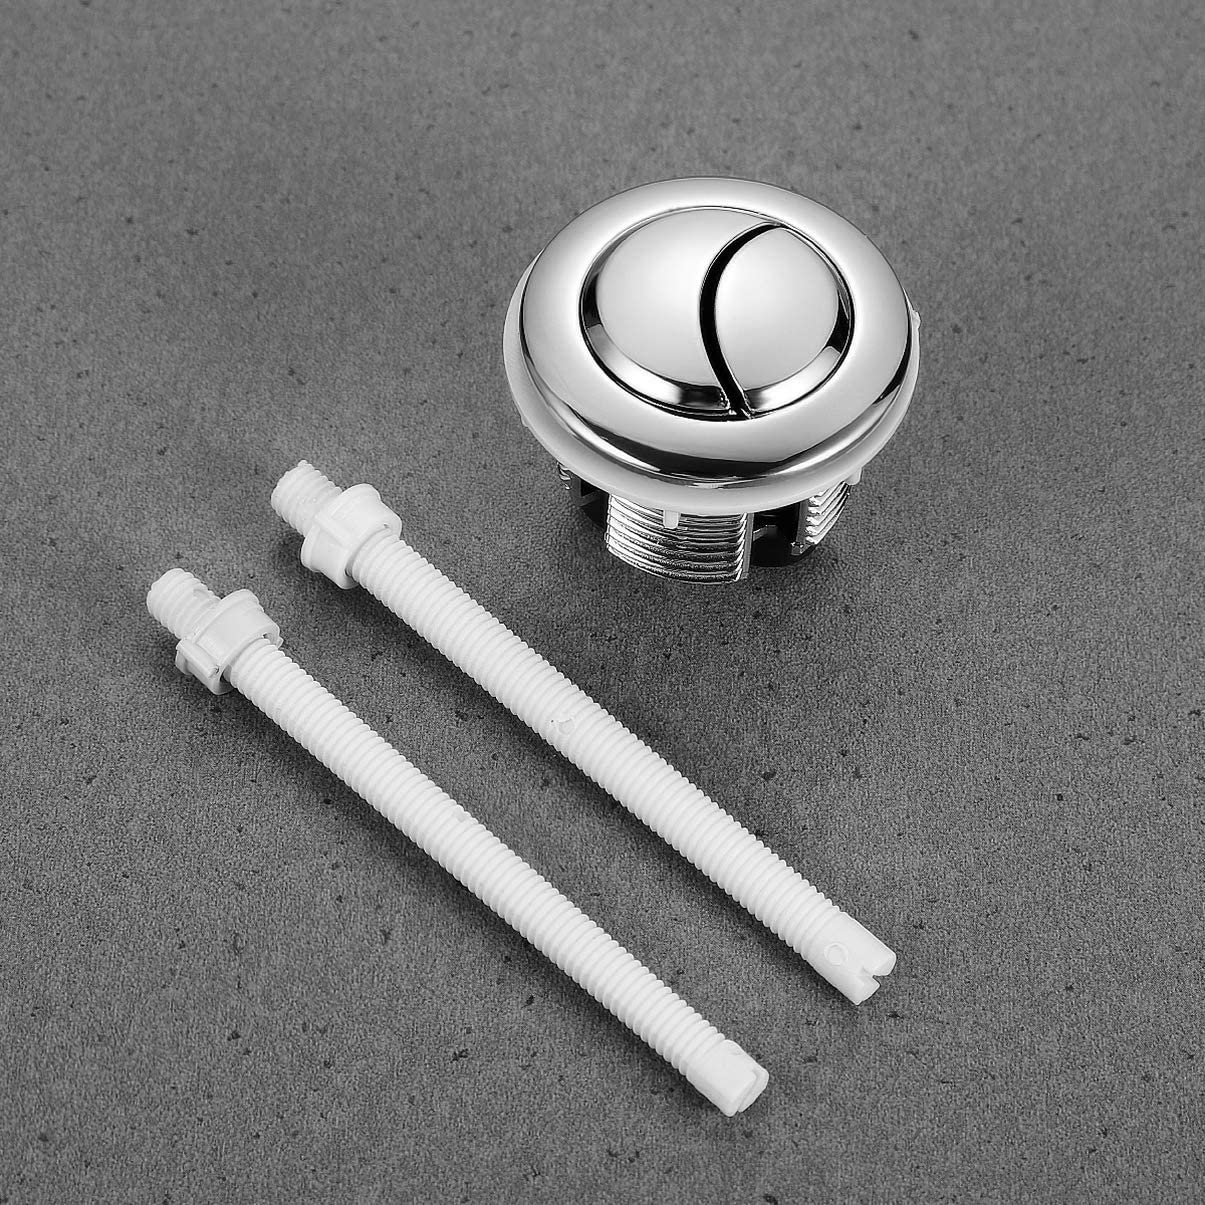 TOPBATHY 38mm Toilet Dual Push Flush Toilet Water Tank Push Button Toilet Button Replaced Flush Button with Diameter for Shower Room Toilet Bathroom